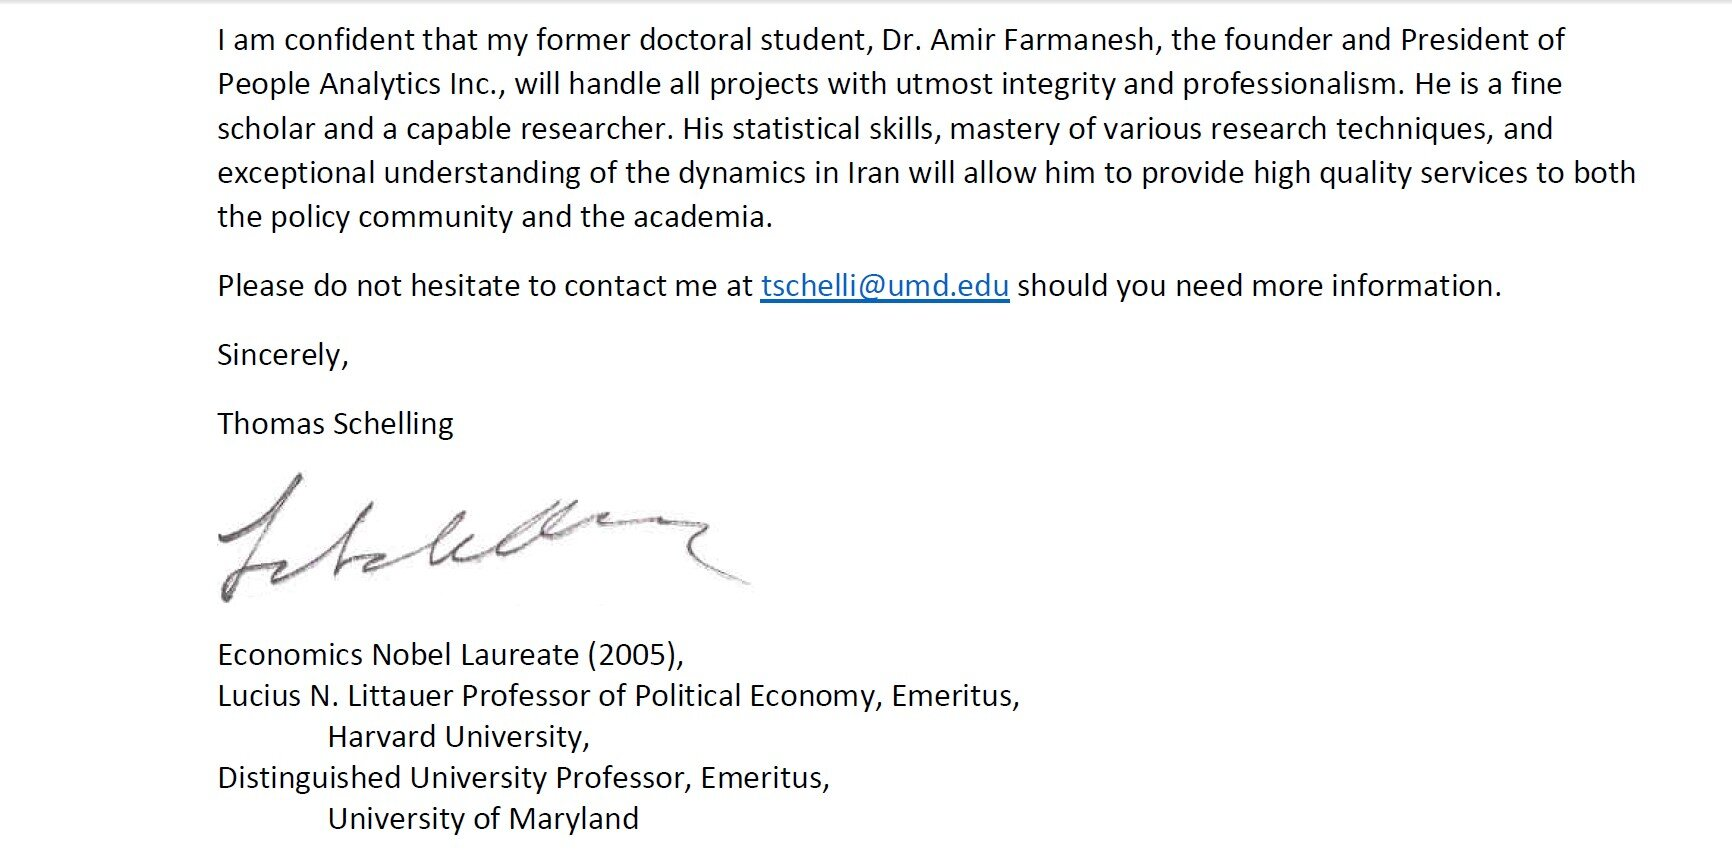 Professor Thomas Schelling letter to Amir Farmanesh in support of the IranPoll